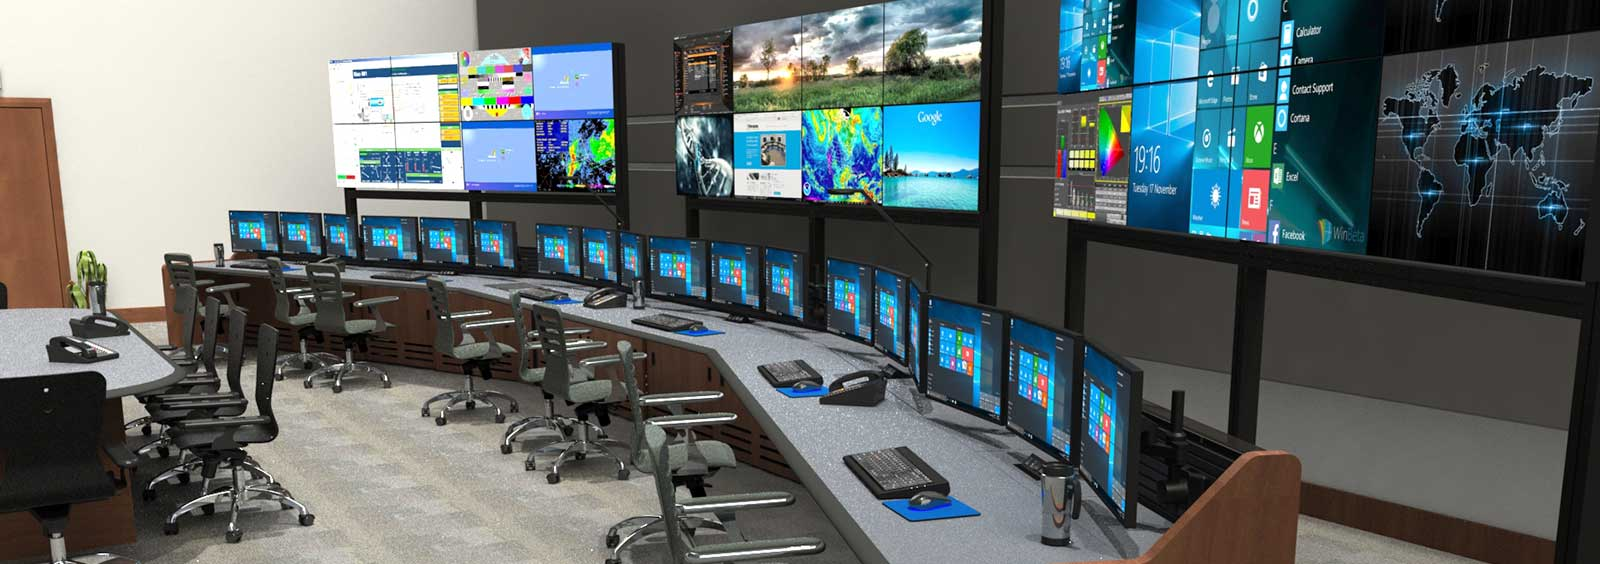 inracks-portable-monitor-wall-for-control-room